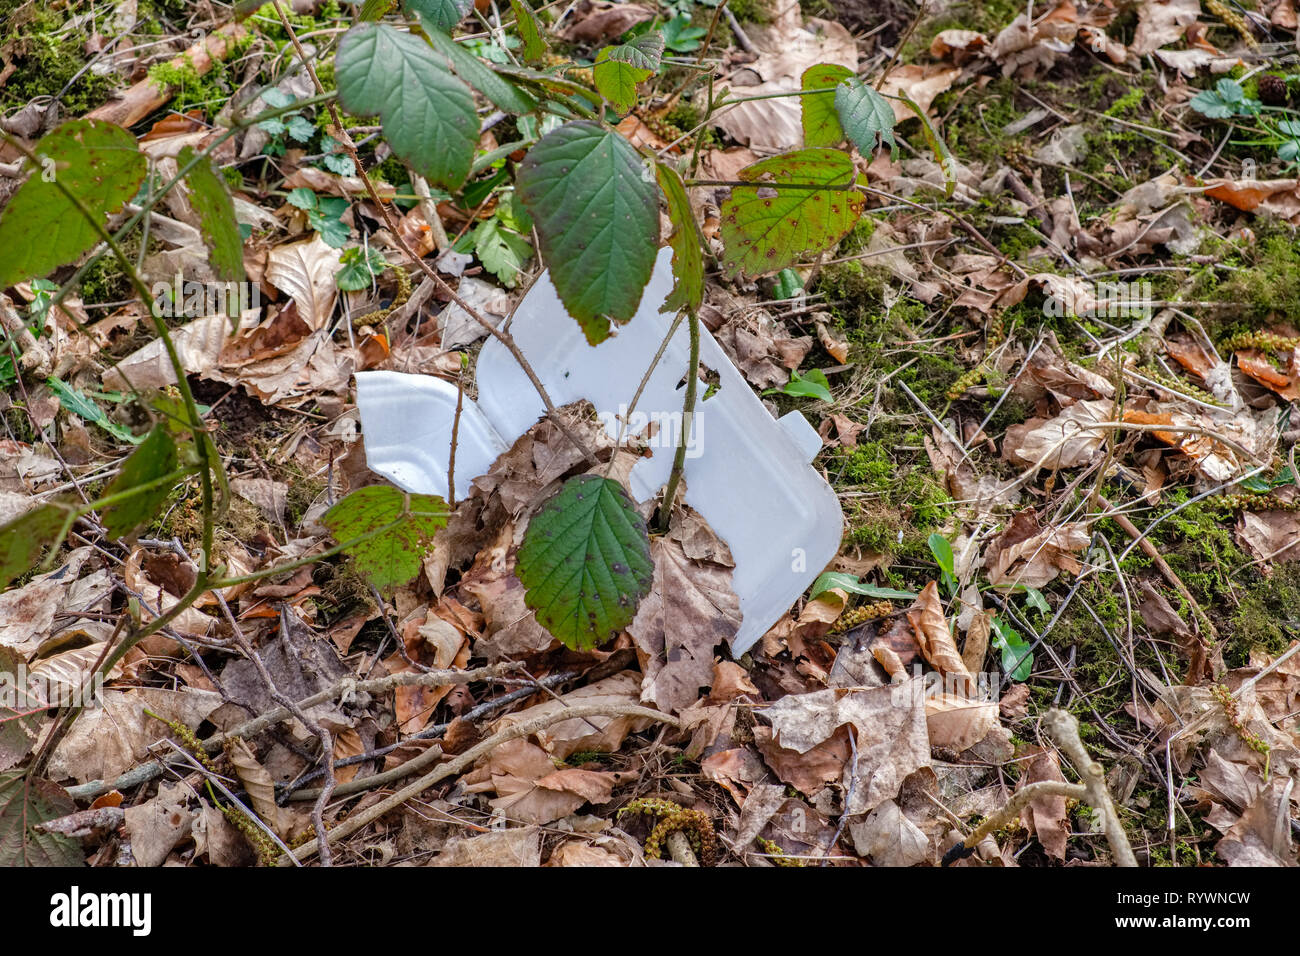 Environmental image of Waste with a Plastic non-biodegradable foot container lying amongst leaves on the forrest floor. - Stock Image